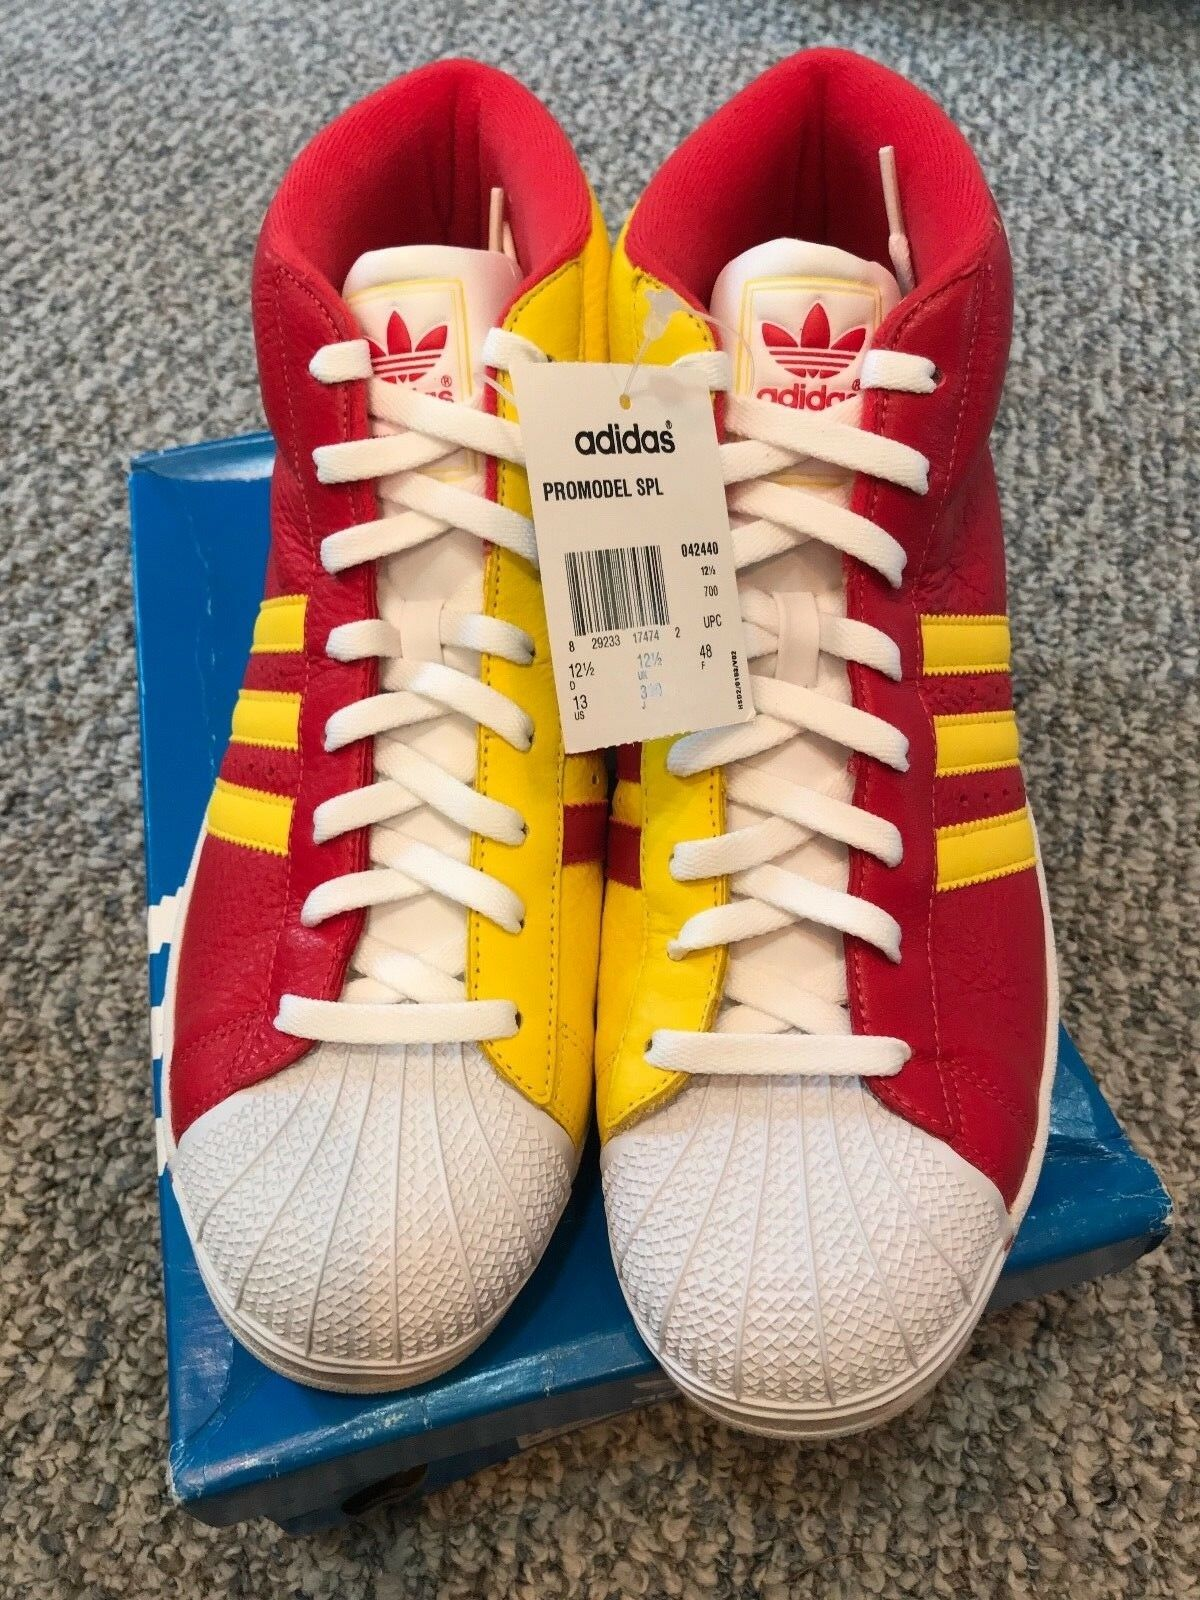 042440 Size Adidas ProModel SPL (Red/Yellow) Size 042440 13 c58ee9